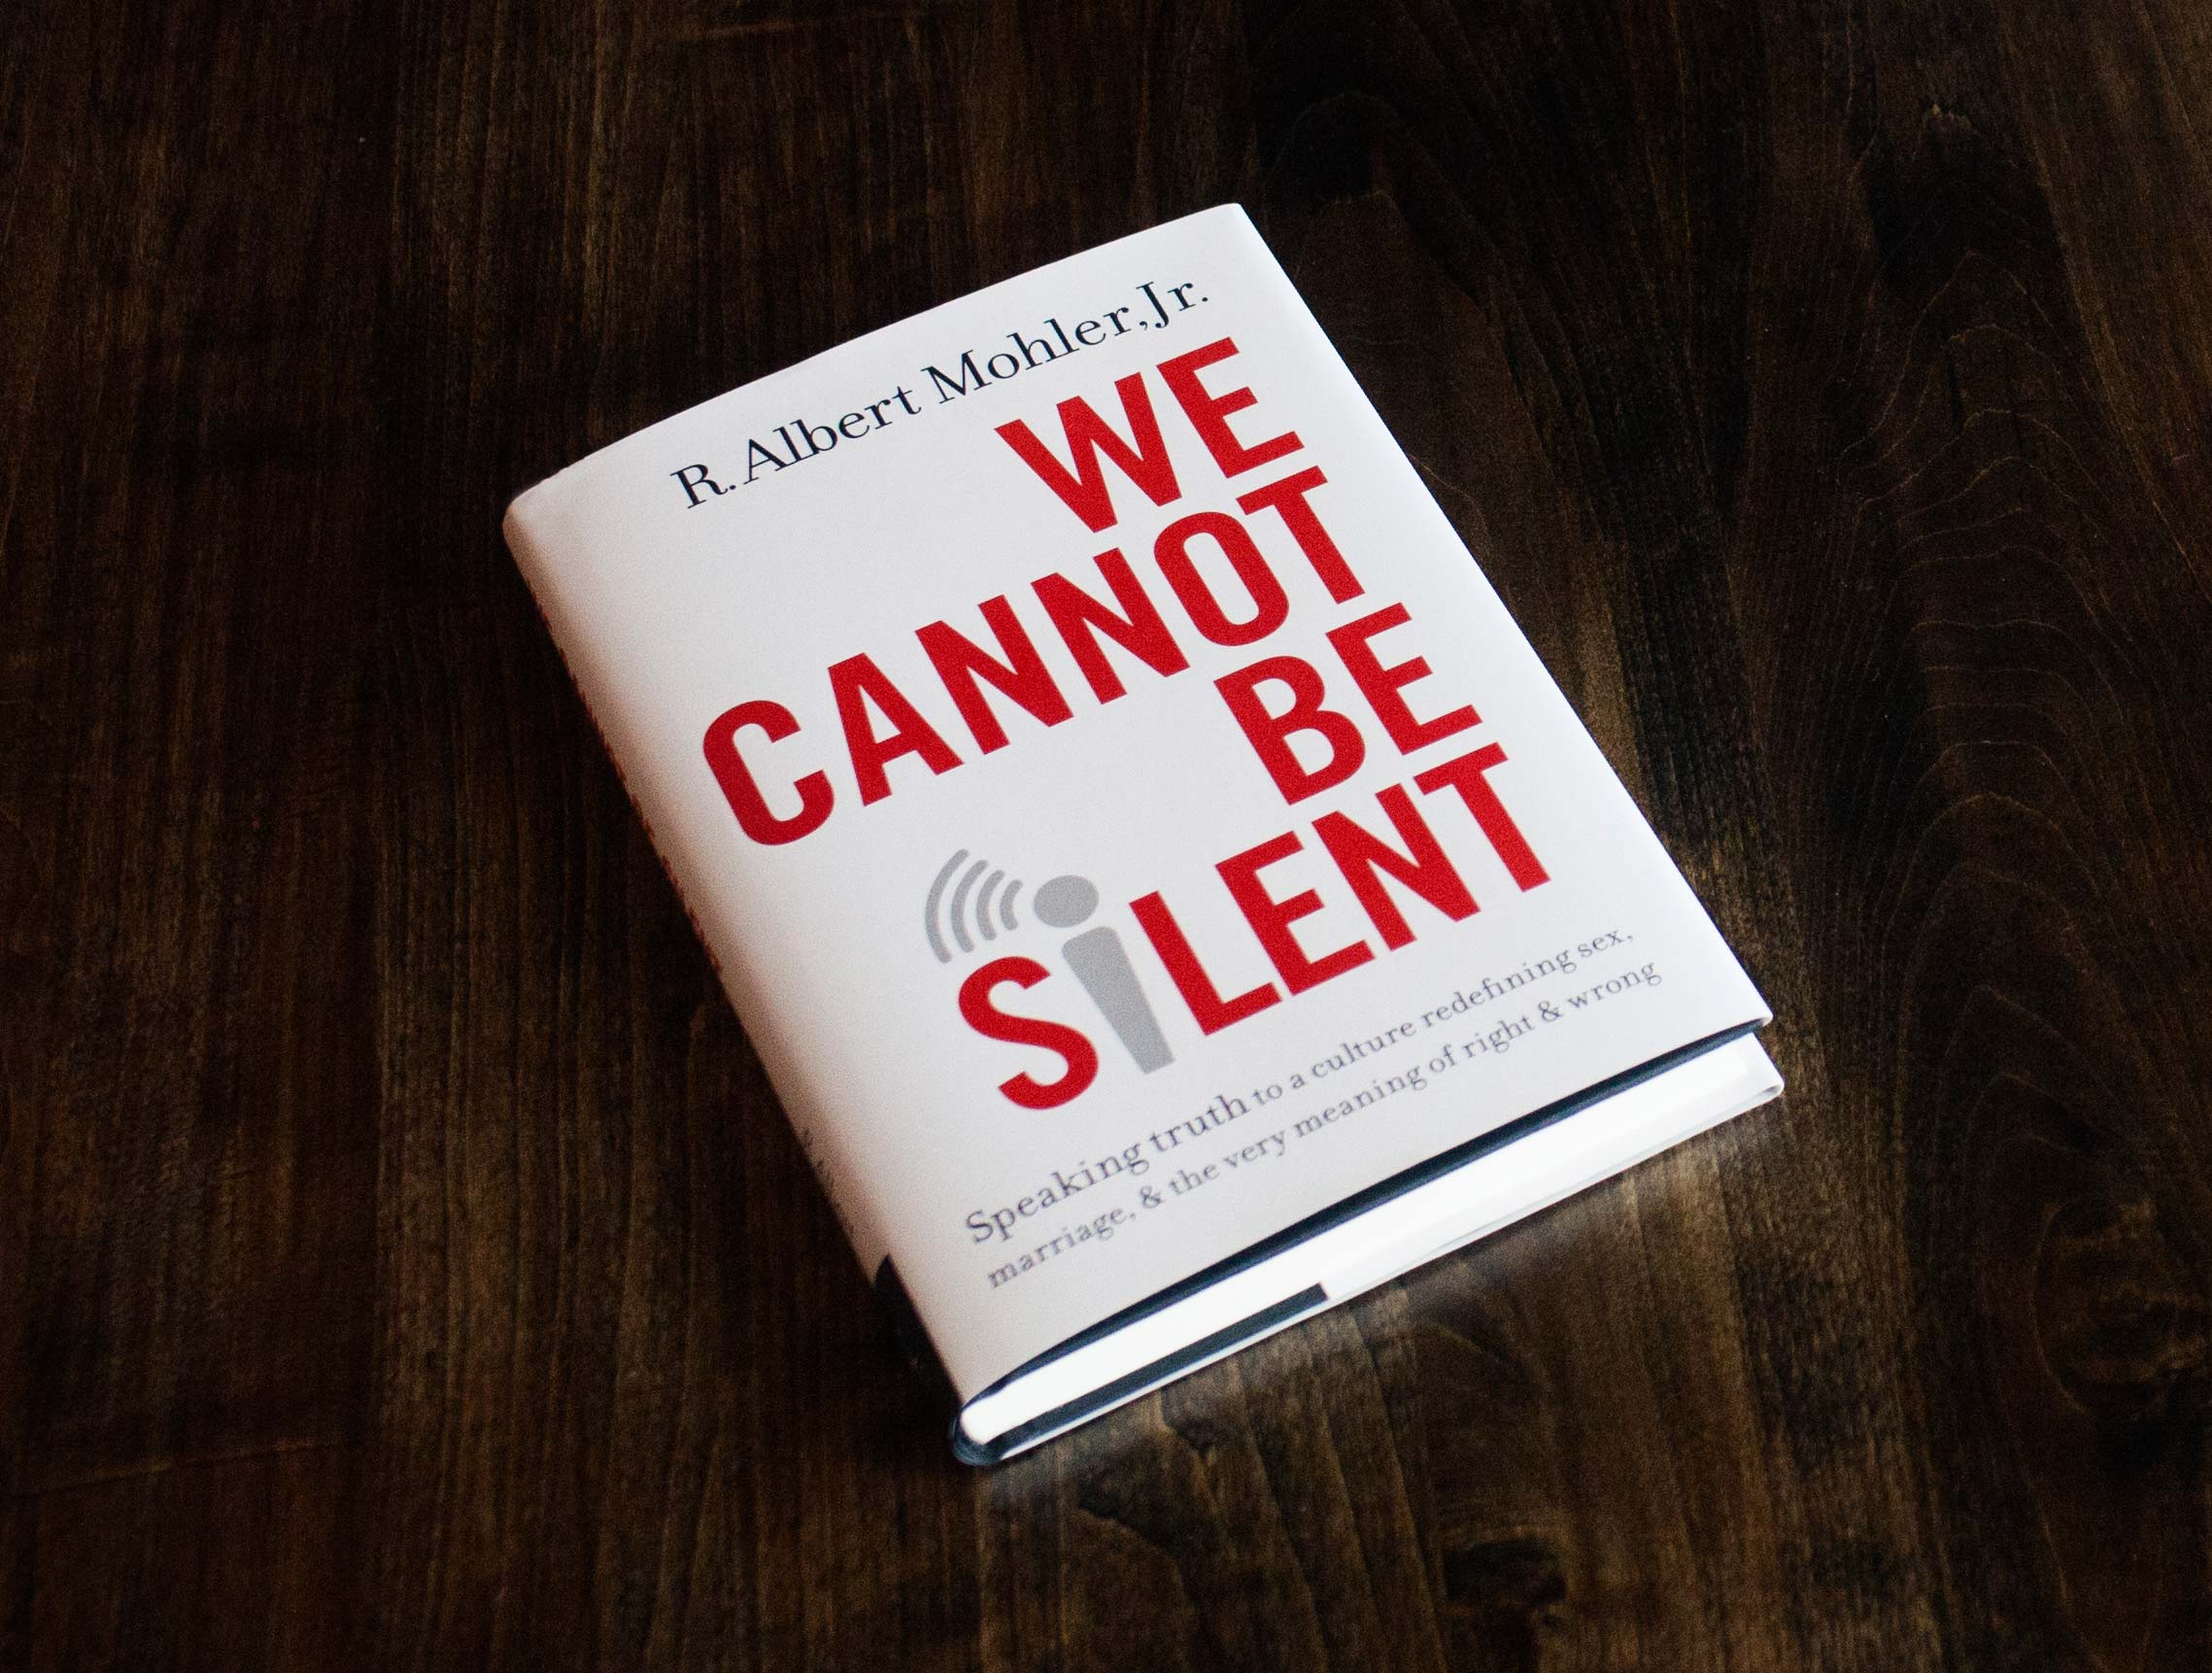 Book Review: We Cannot Be Silent by Dr. Albert Mohler